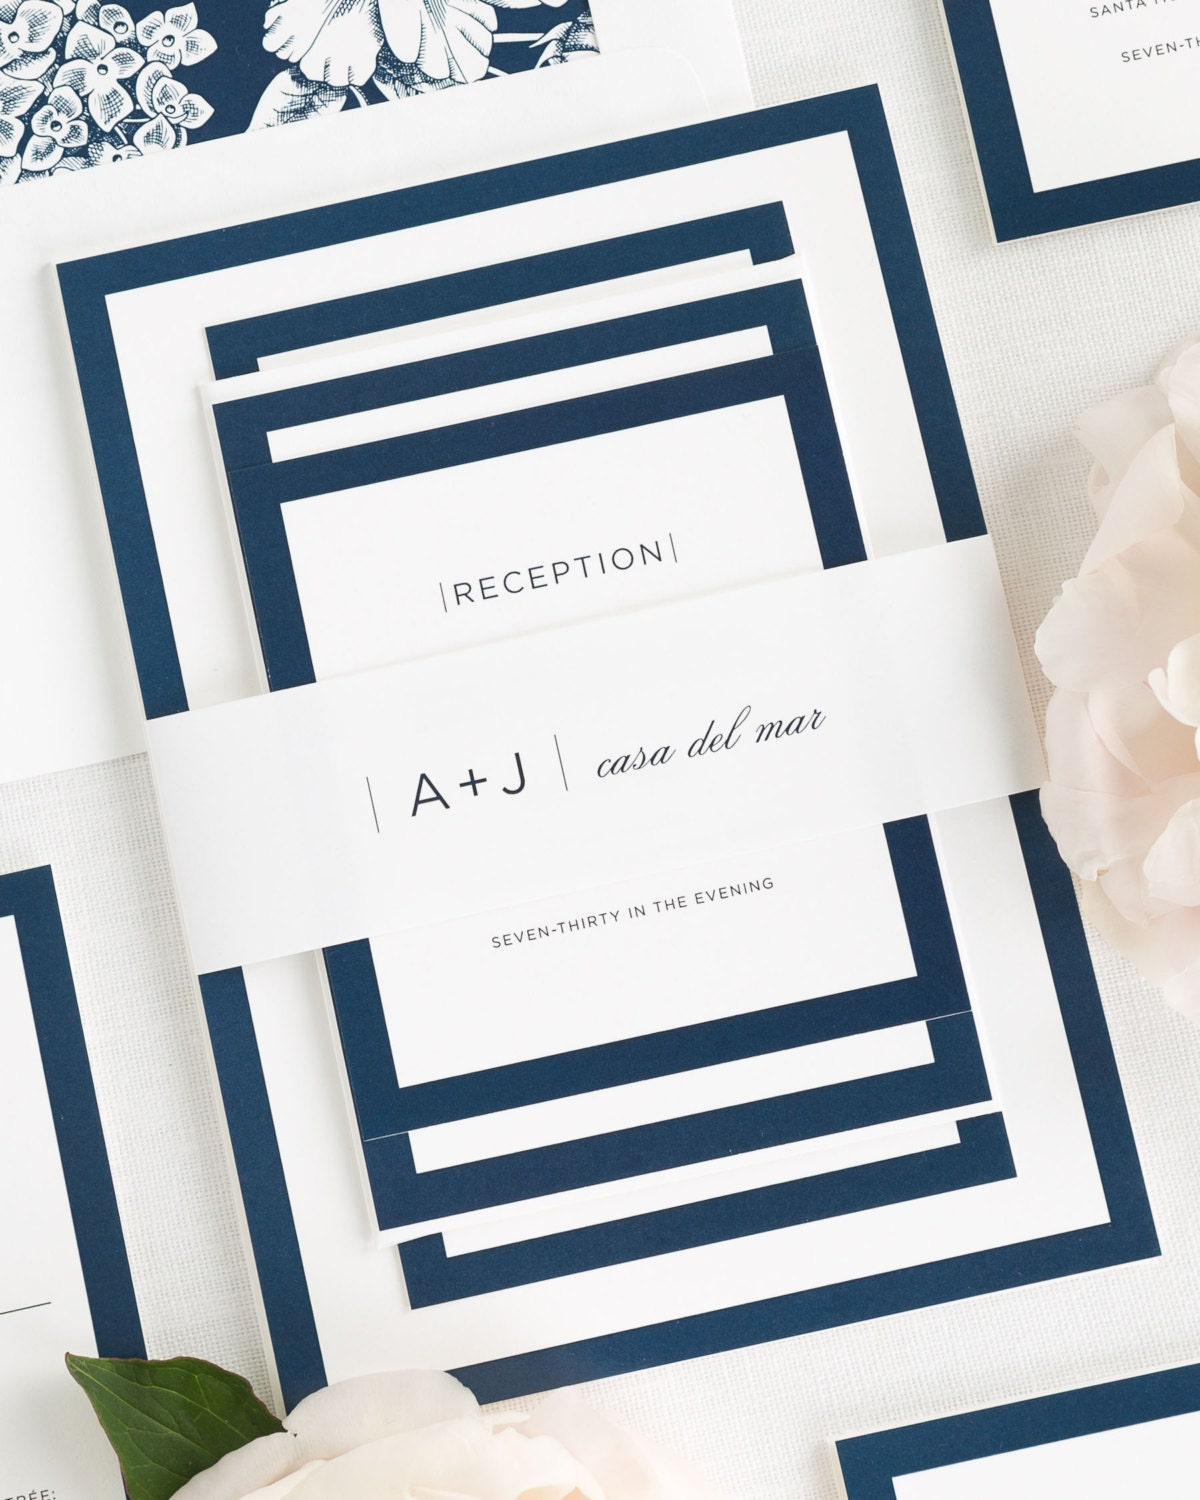 Contemporary Wedding Invitations: Sophisticated Modern Wedding Invitations Sample